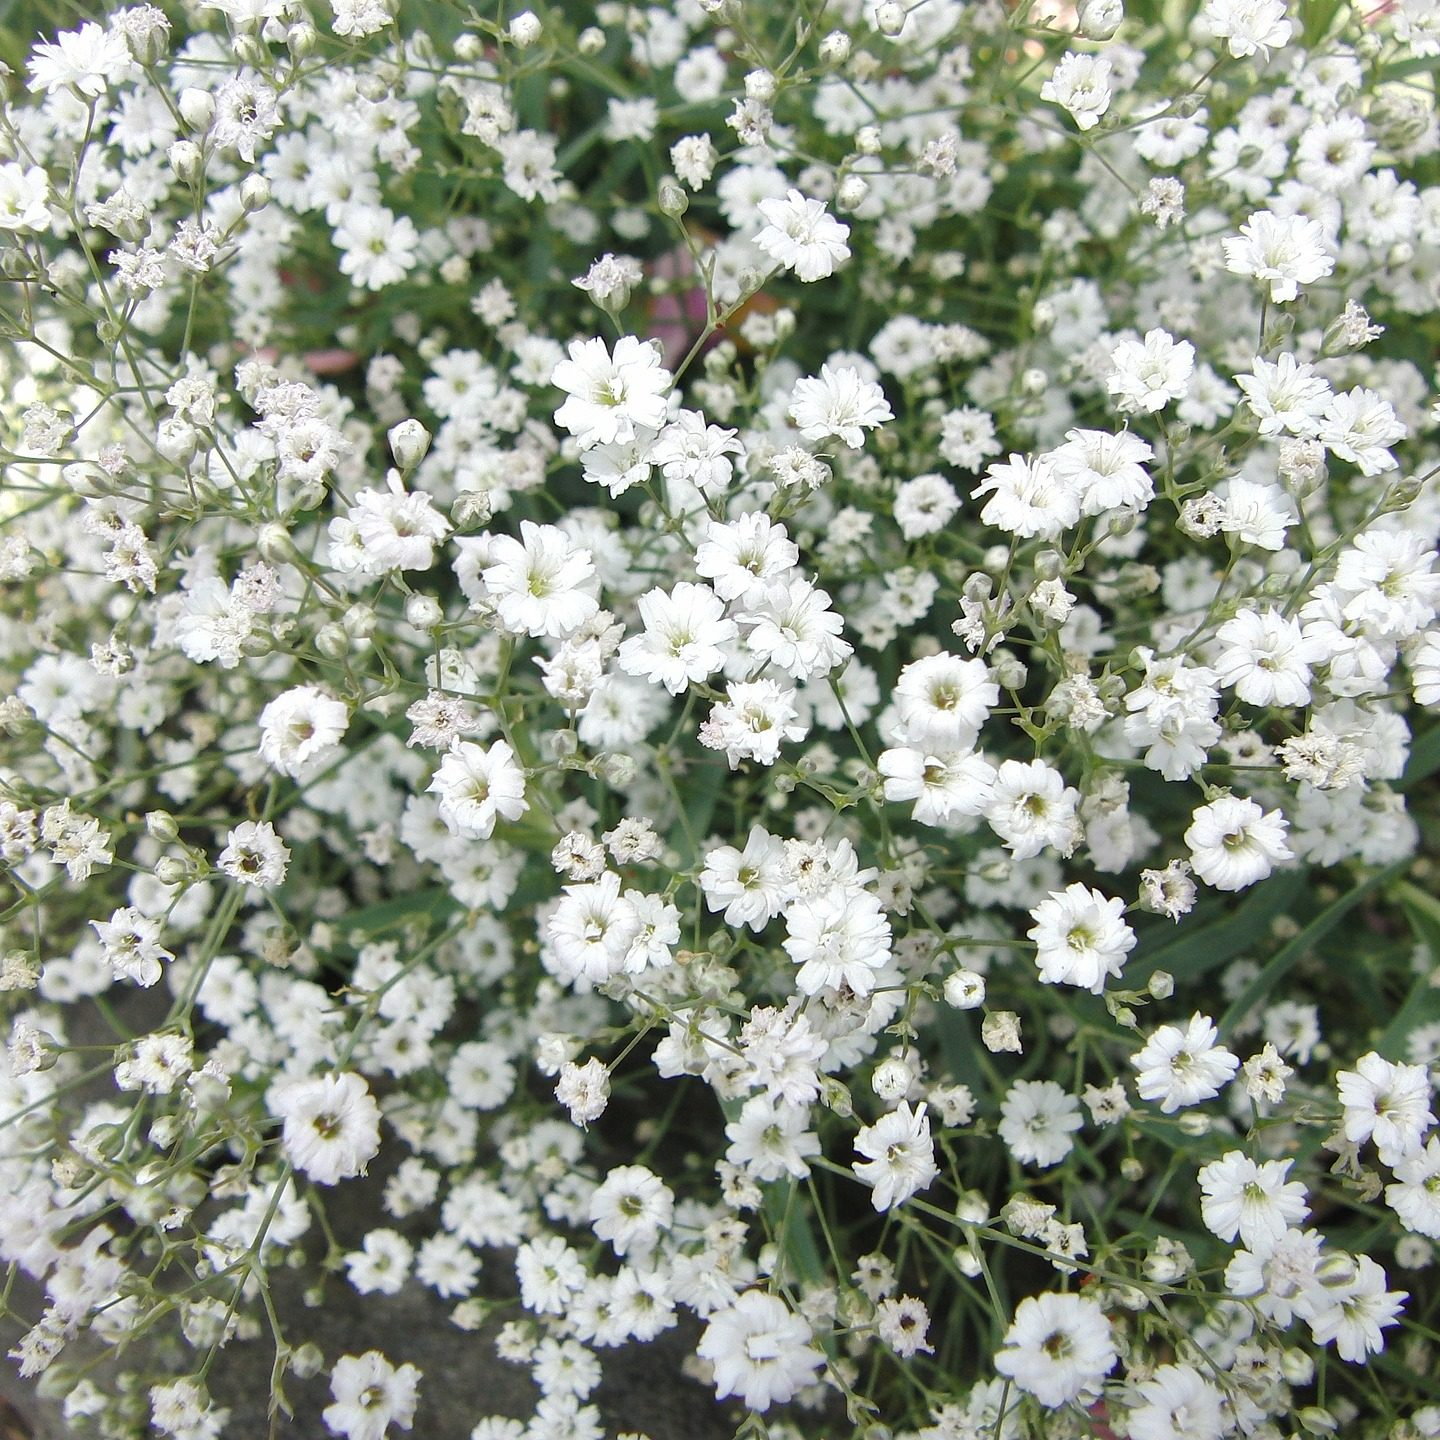 Imaginature Ltd seeks approval for field trials of GM Gypsophila in Kenya